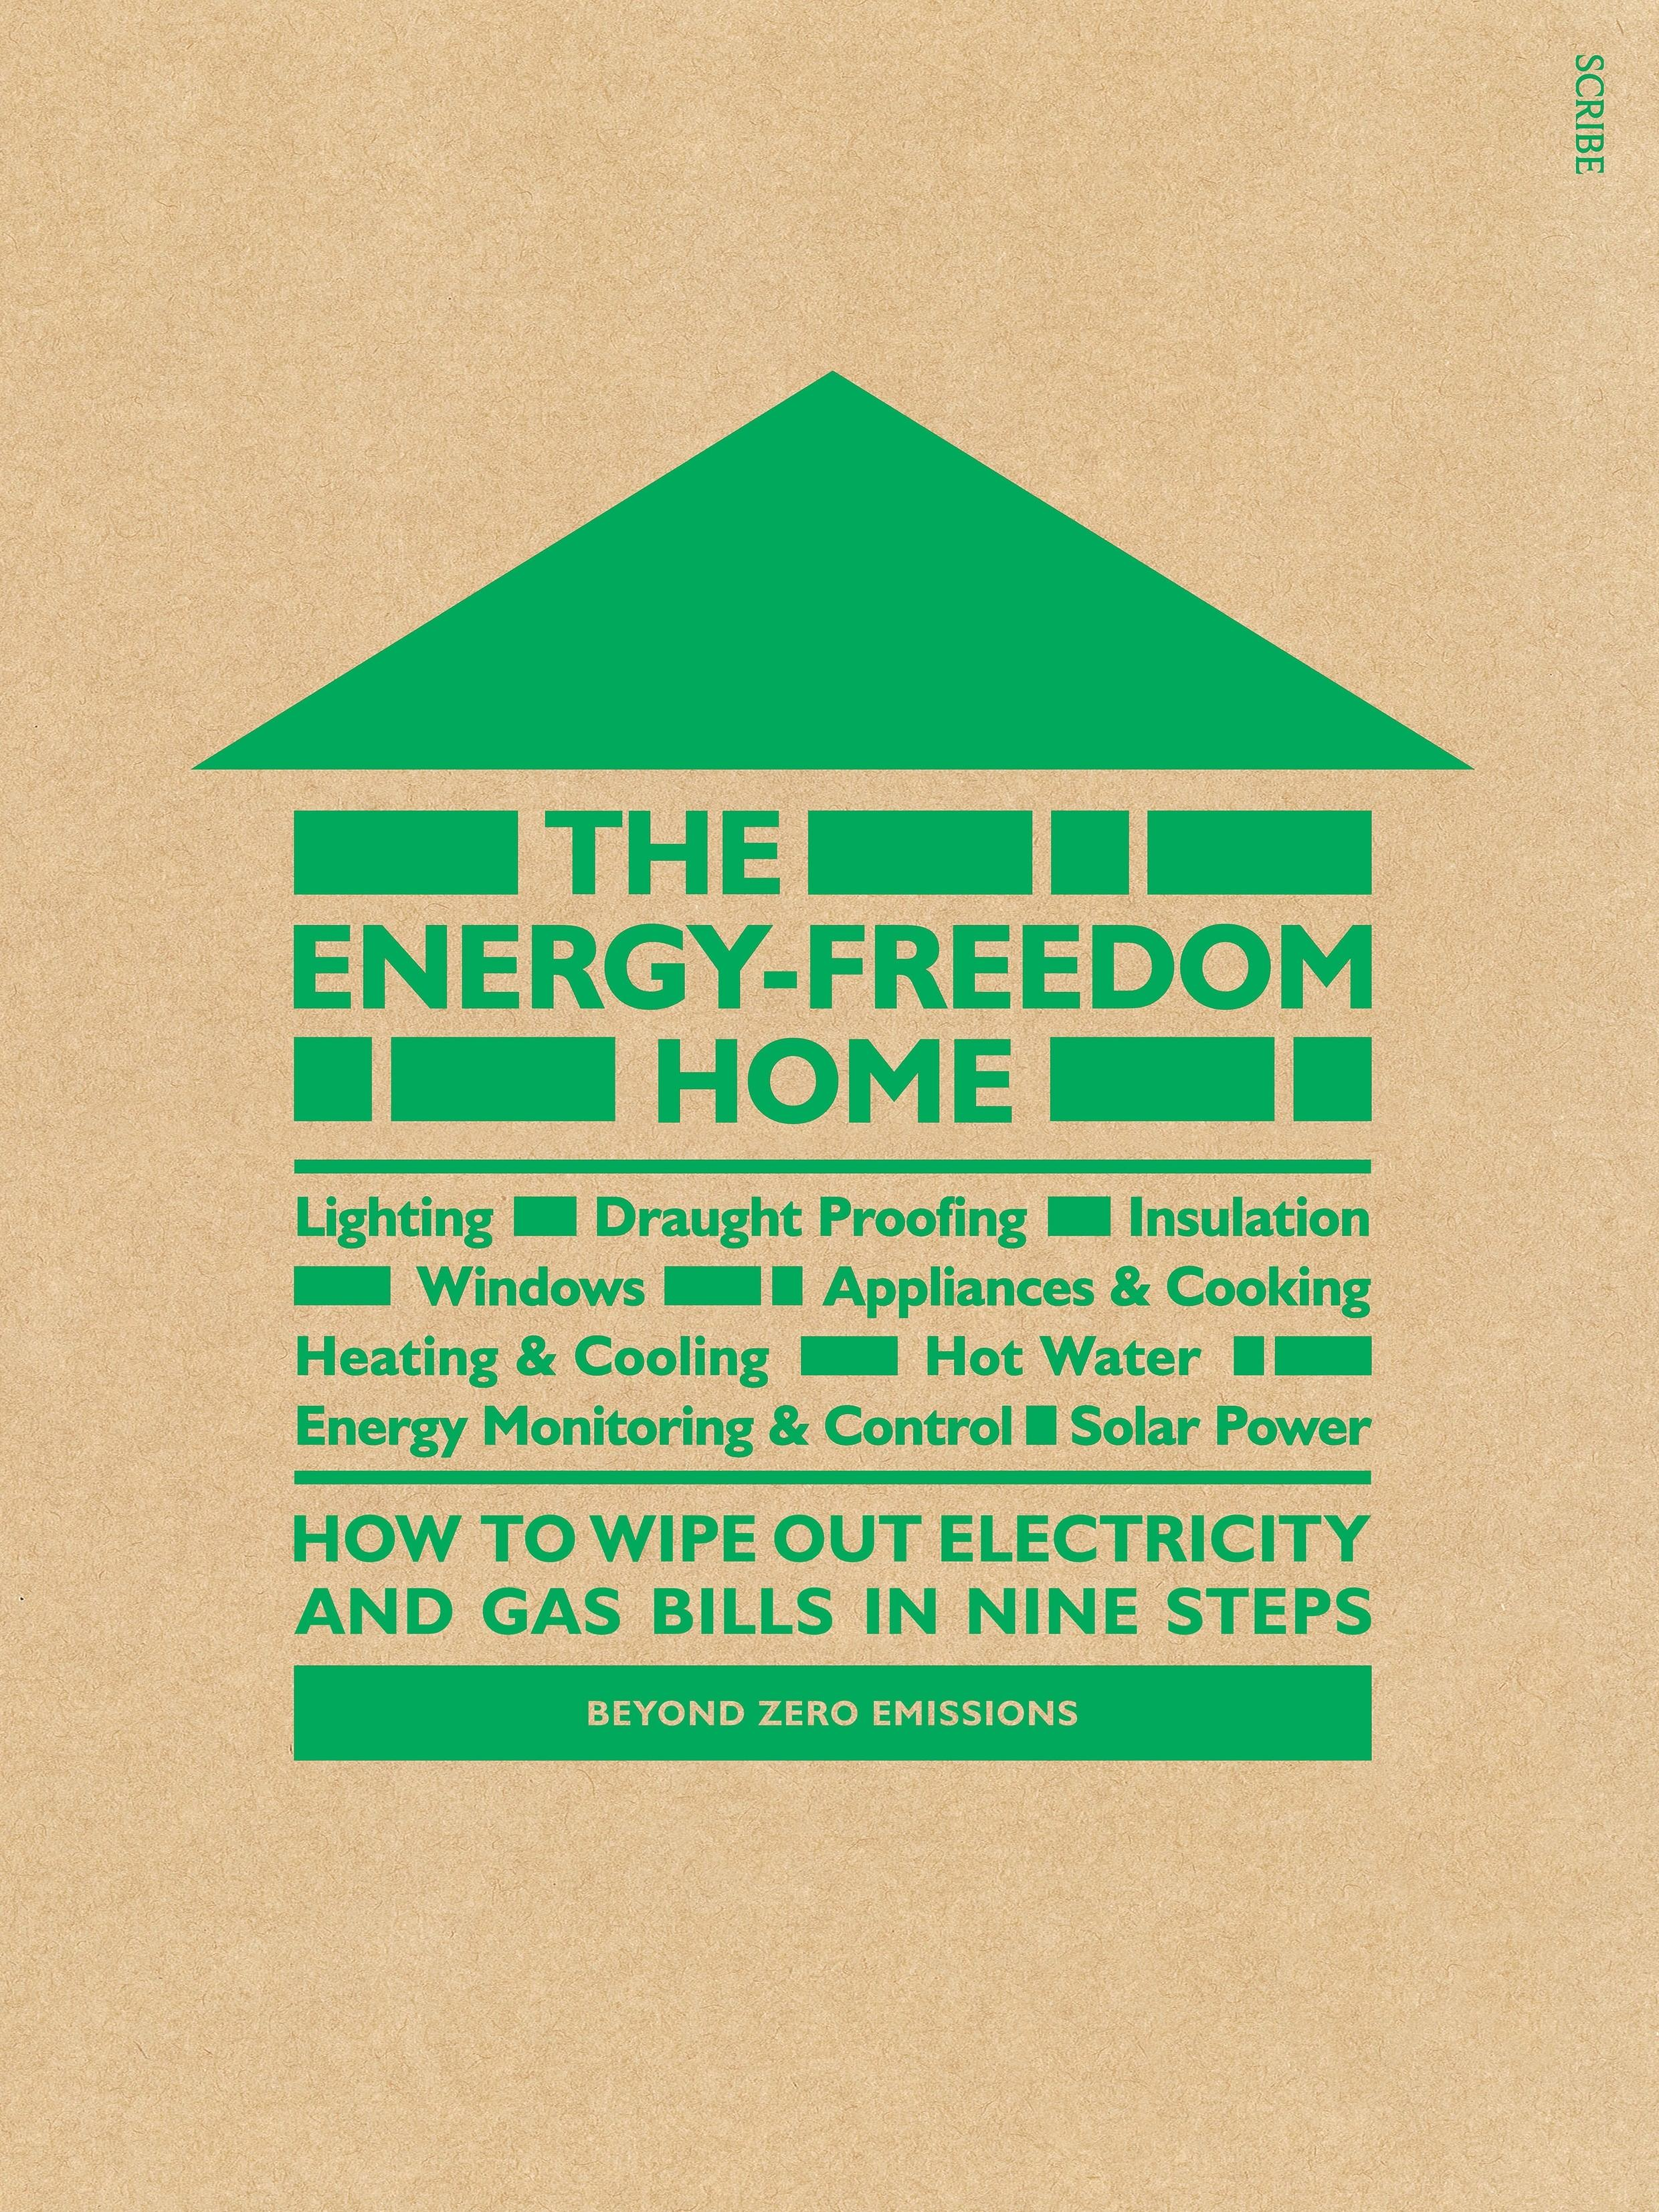 The Energy-Freedom Home: how to wipe out electricity and gas bills inninesteps